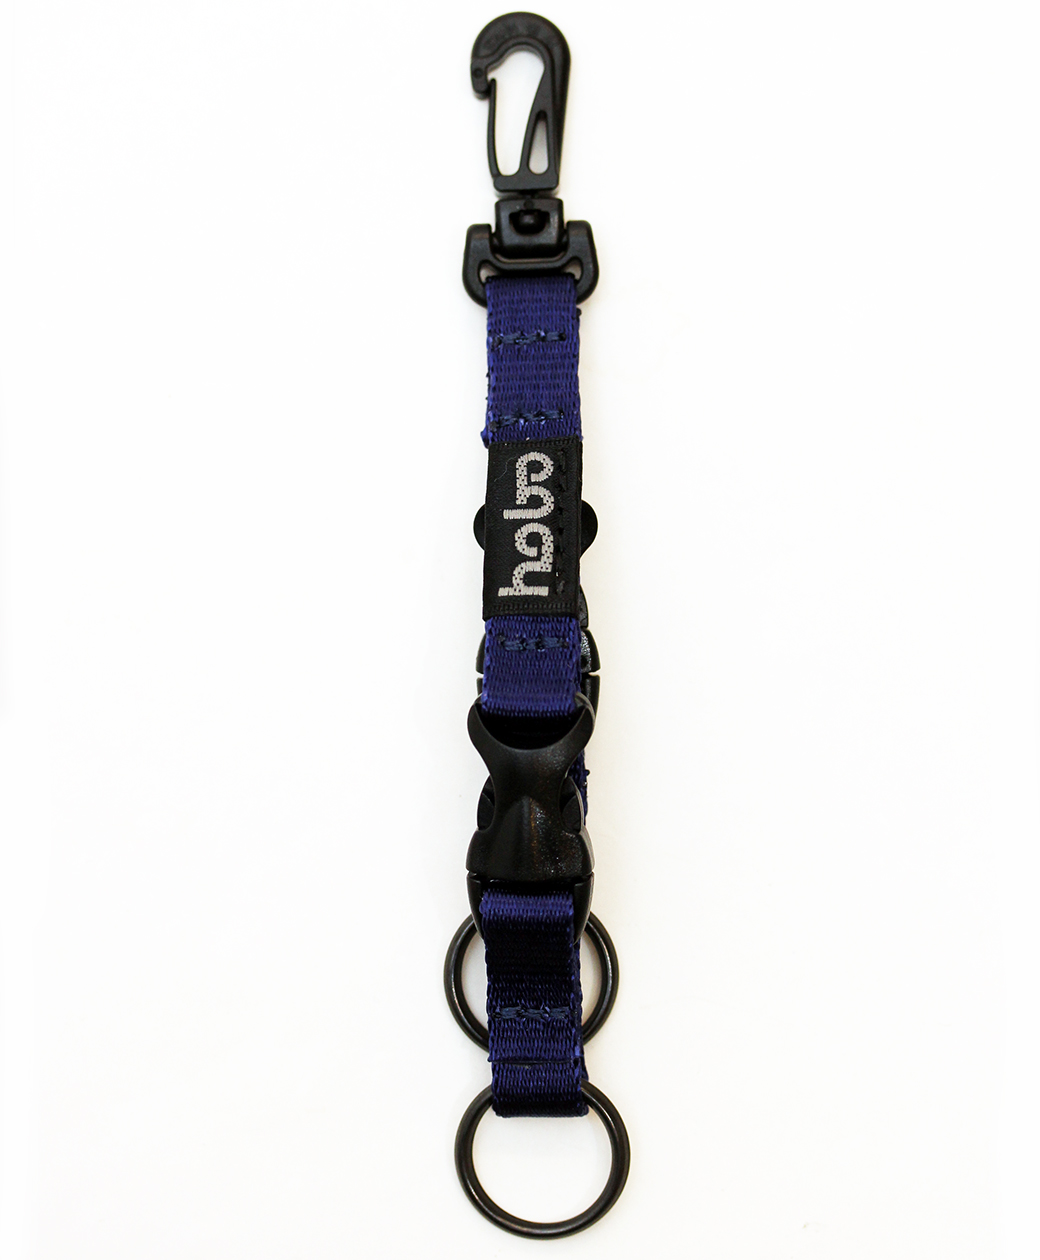 hobo NYLON TAPE KEY RING with DOUBLE BUCKLE RELEASE(BLUE)